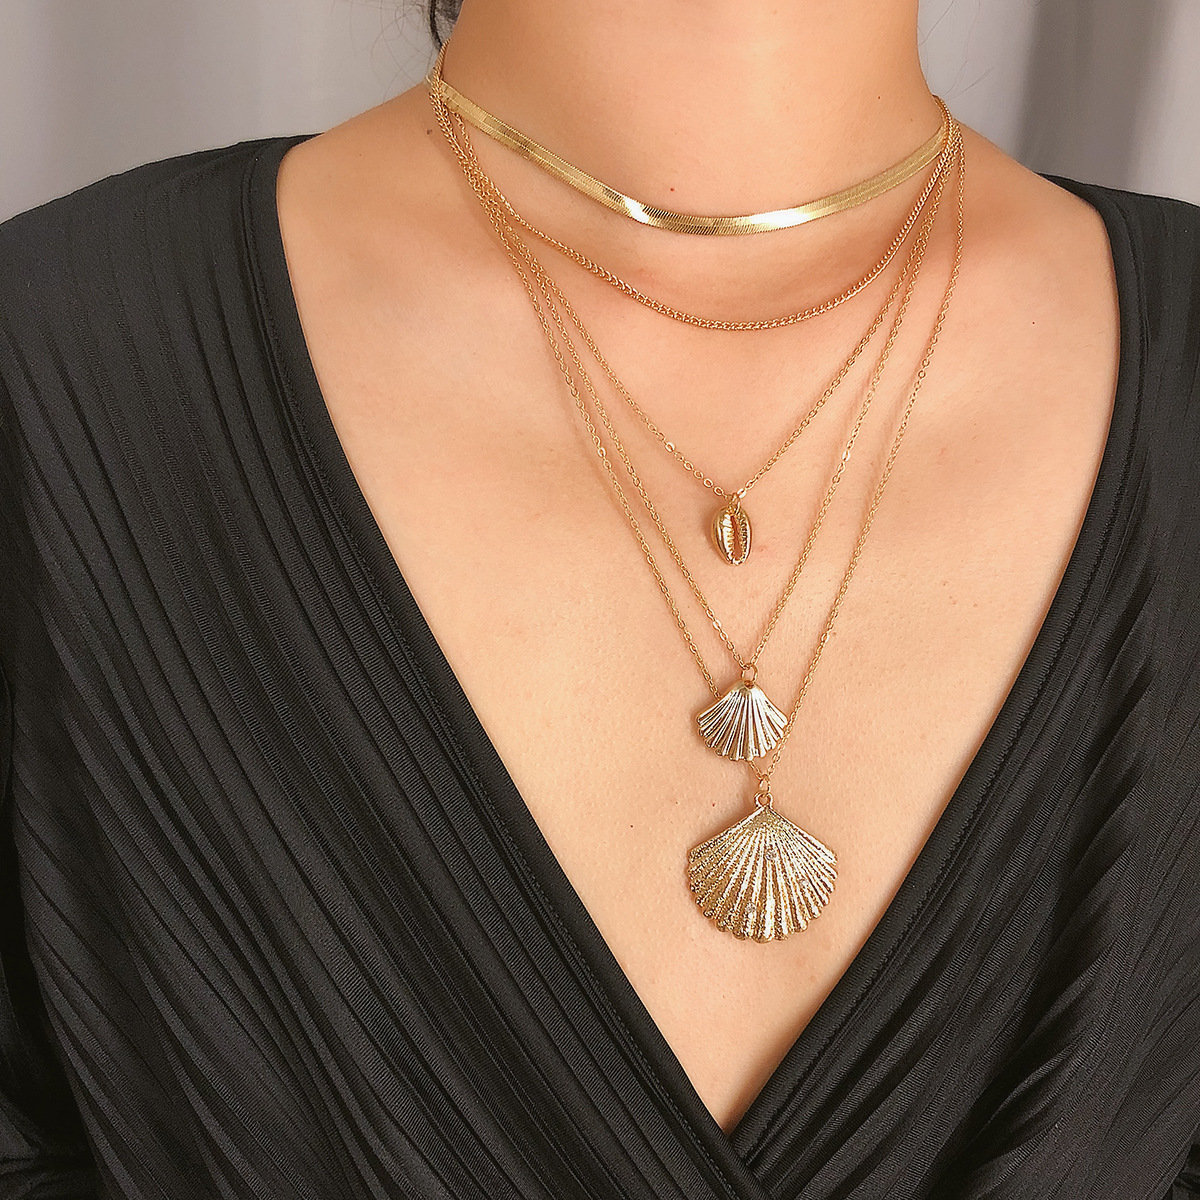 Bohemian Multi-layer Necklace Shell Pendant Alloy Chain Charm Necklace Ethnic Jewelry for Women